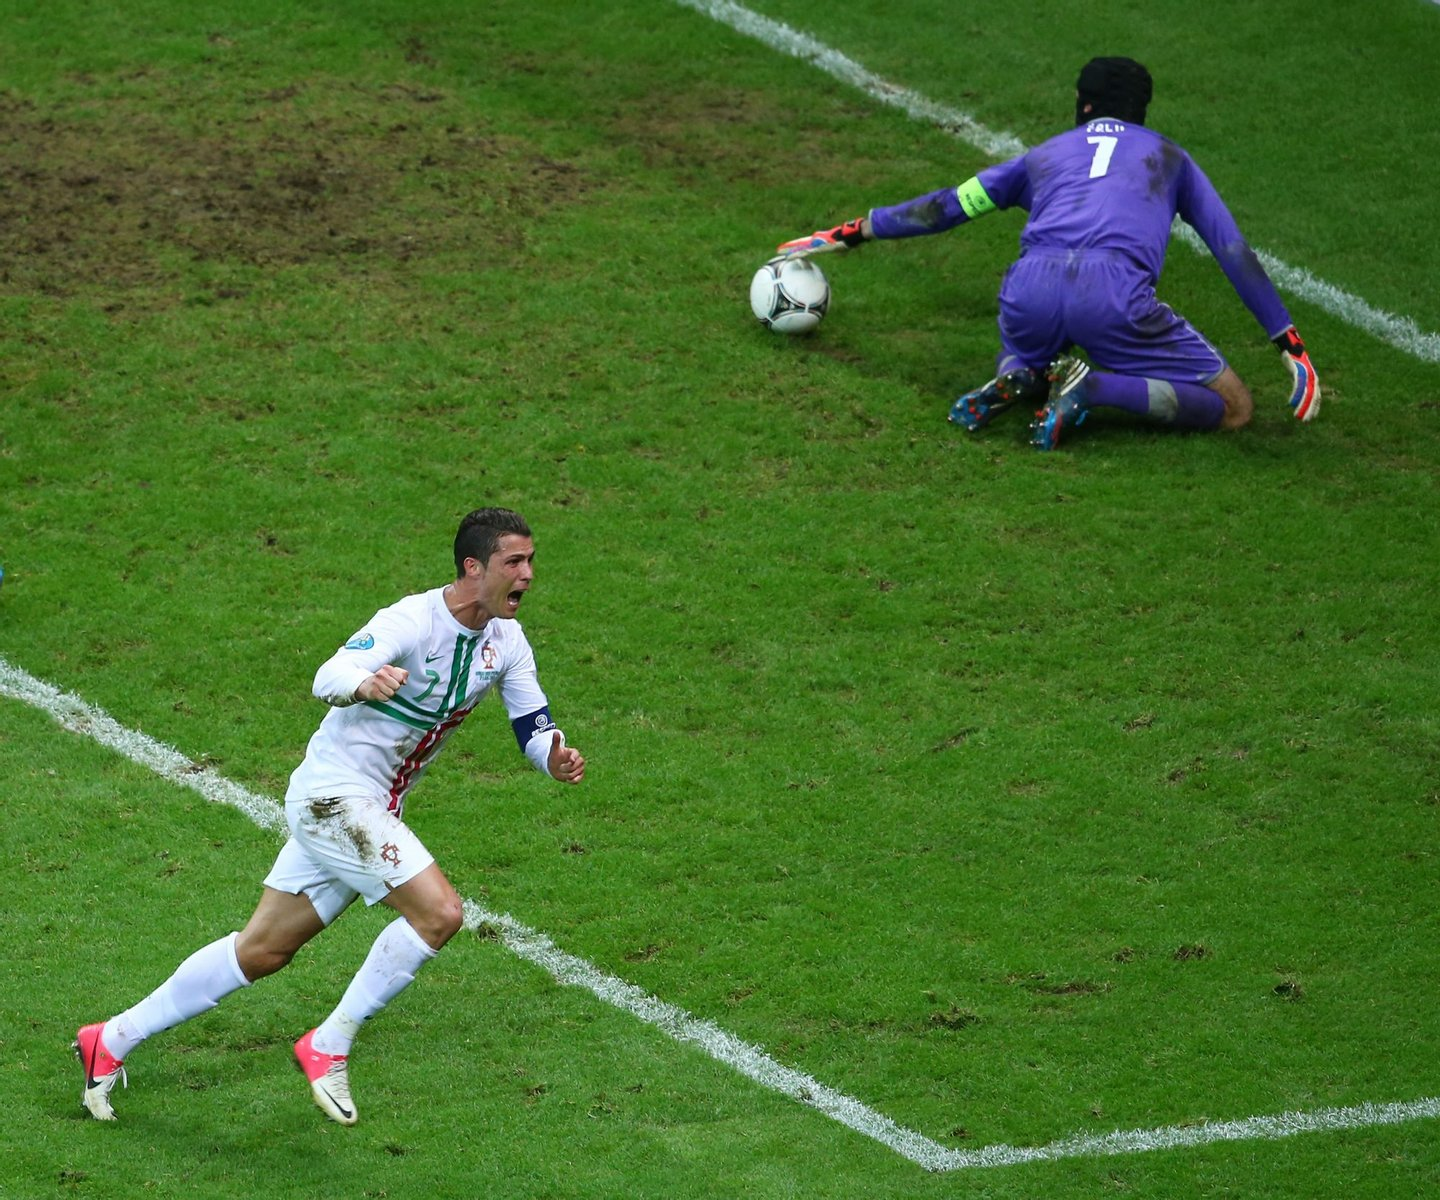 WARSAW, POLAND - JUNE 21: Cristiano Ronaldo of Portugal celebrates scoring the opening goal with a header past Petr Cech of Czech Republic during the UEFA EURO 2012 quarter final match between Czech Republic and Portugal at The National Stadium on June 21, 2012 in Warsaw, Poland. (Photo by Michael Steele/Getty Images)